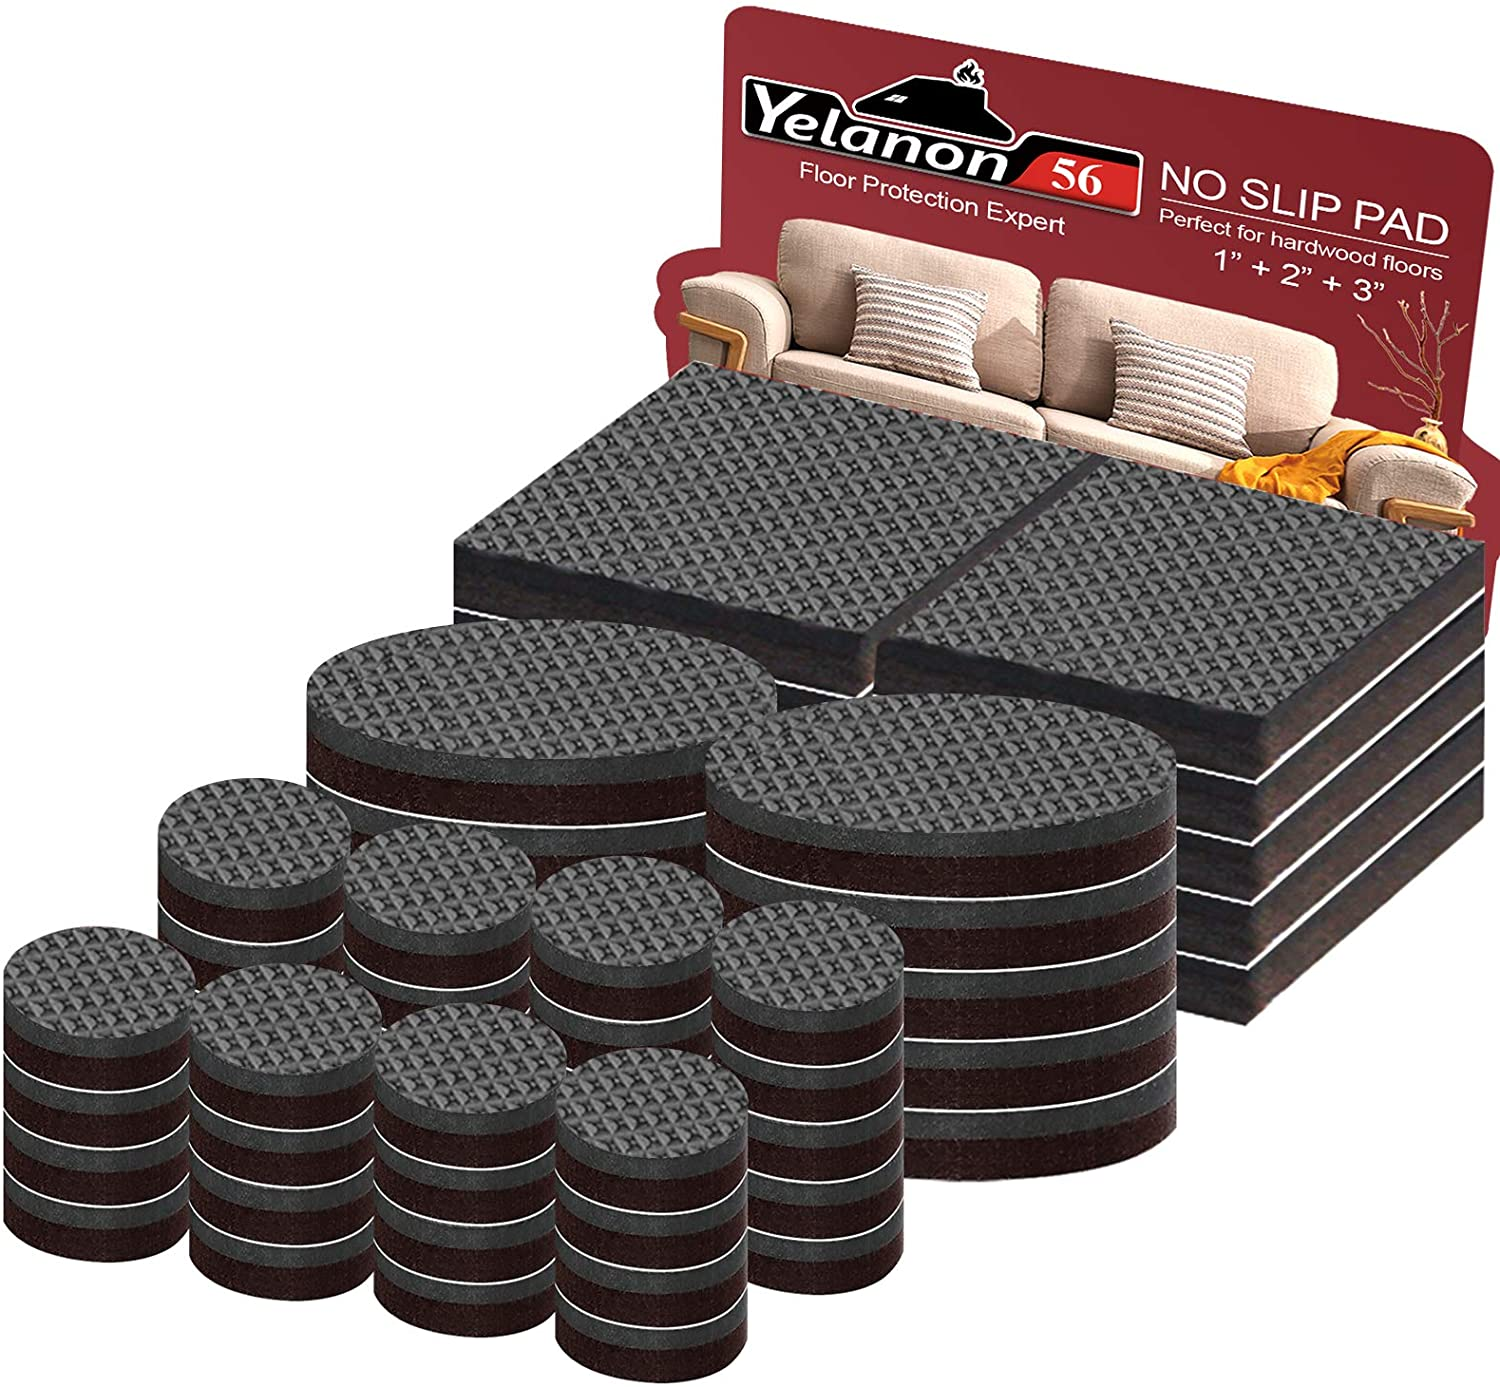 """Yelanon Furniture Pads (56) - 36pcs 1"""" + 20pcs 2"""" Non Slip Furniture Pads Self Adhesive Rubber Feet Furniture Grippers - Anti Skid Floor Protectors for Hardwood - Protector for Floor Chair Legs"""